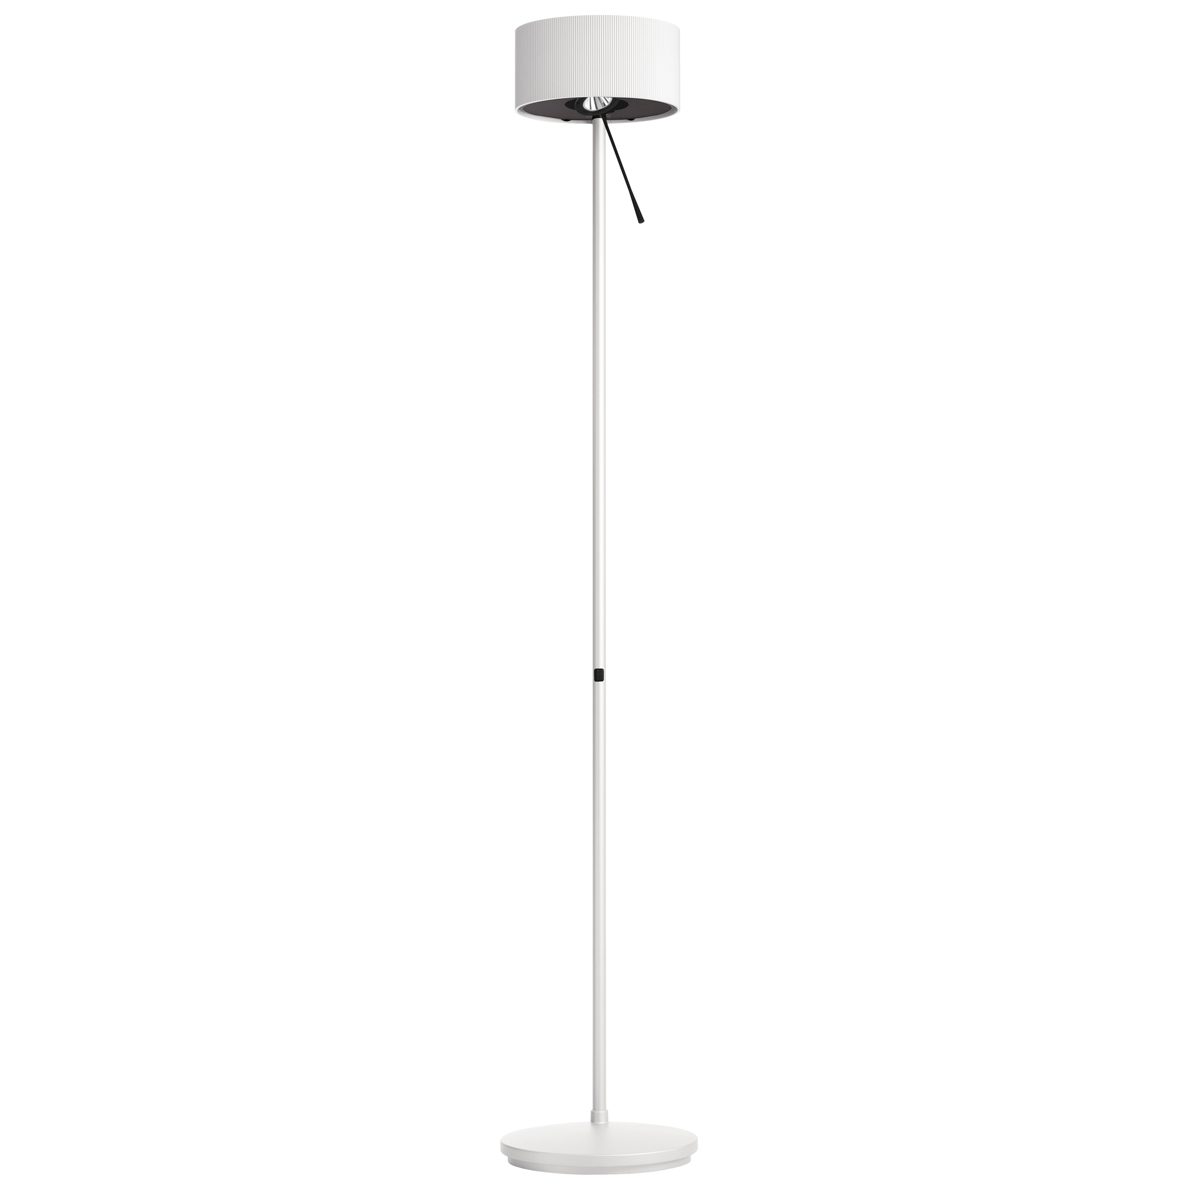 Belux Diogenes-10 LED Stehleuchte DIO10-21-8027-TD